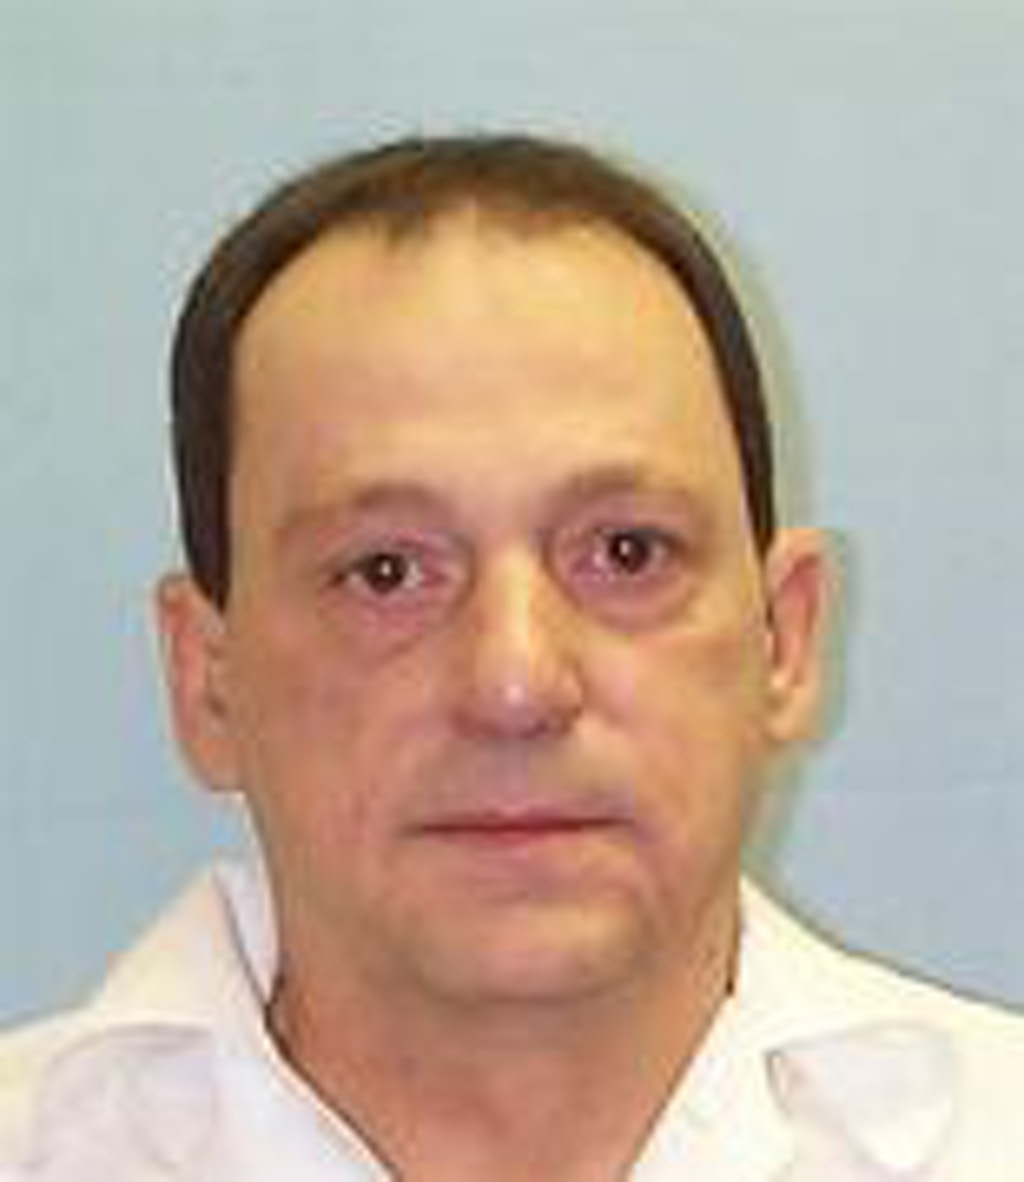 Alabama Inmate Dies on Death Row Before Federal Court Can Decide His Innocence Claim